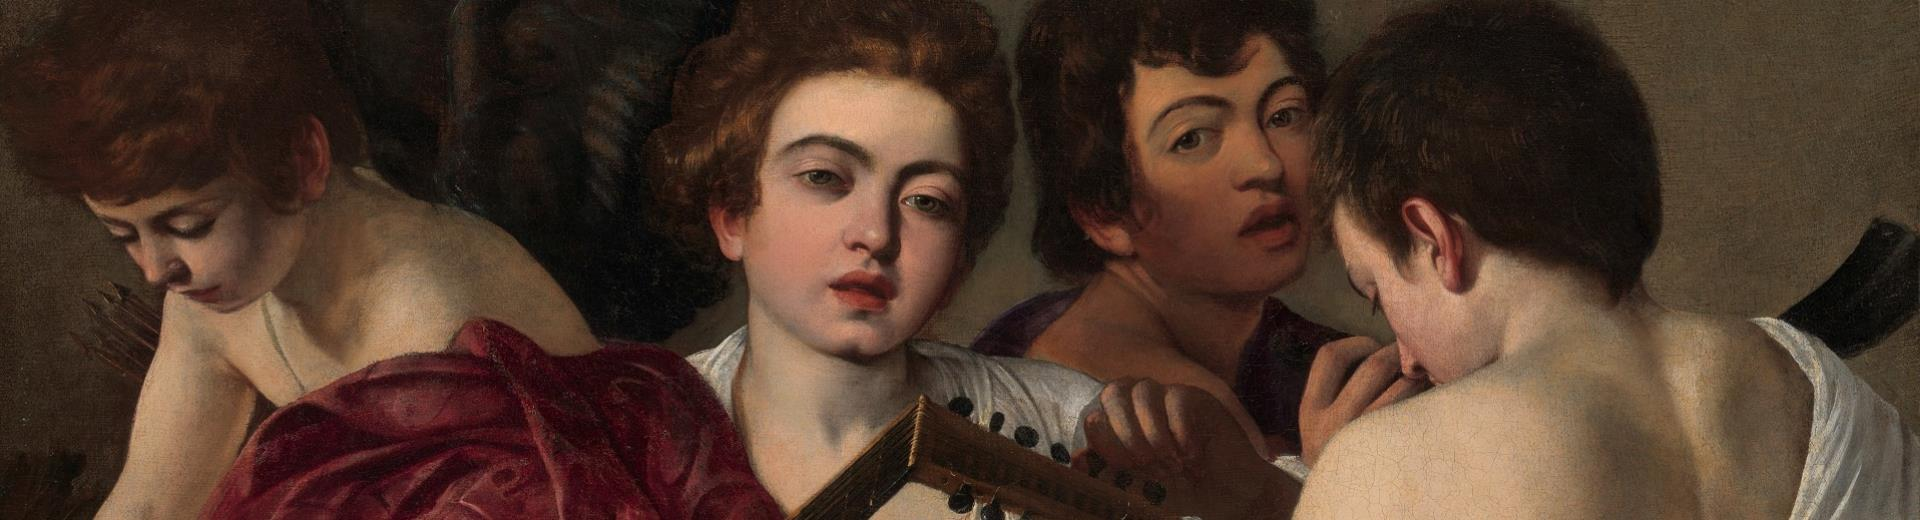 Visit the exhibition of Caravaggio in Genoa and book the offer of the BW Hotel Metropolis